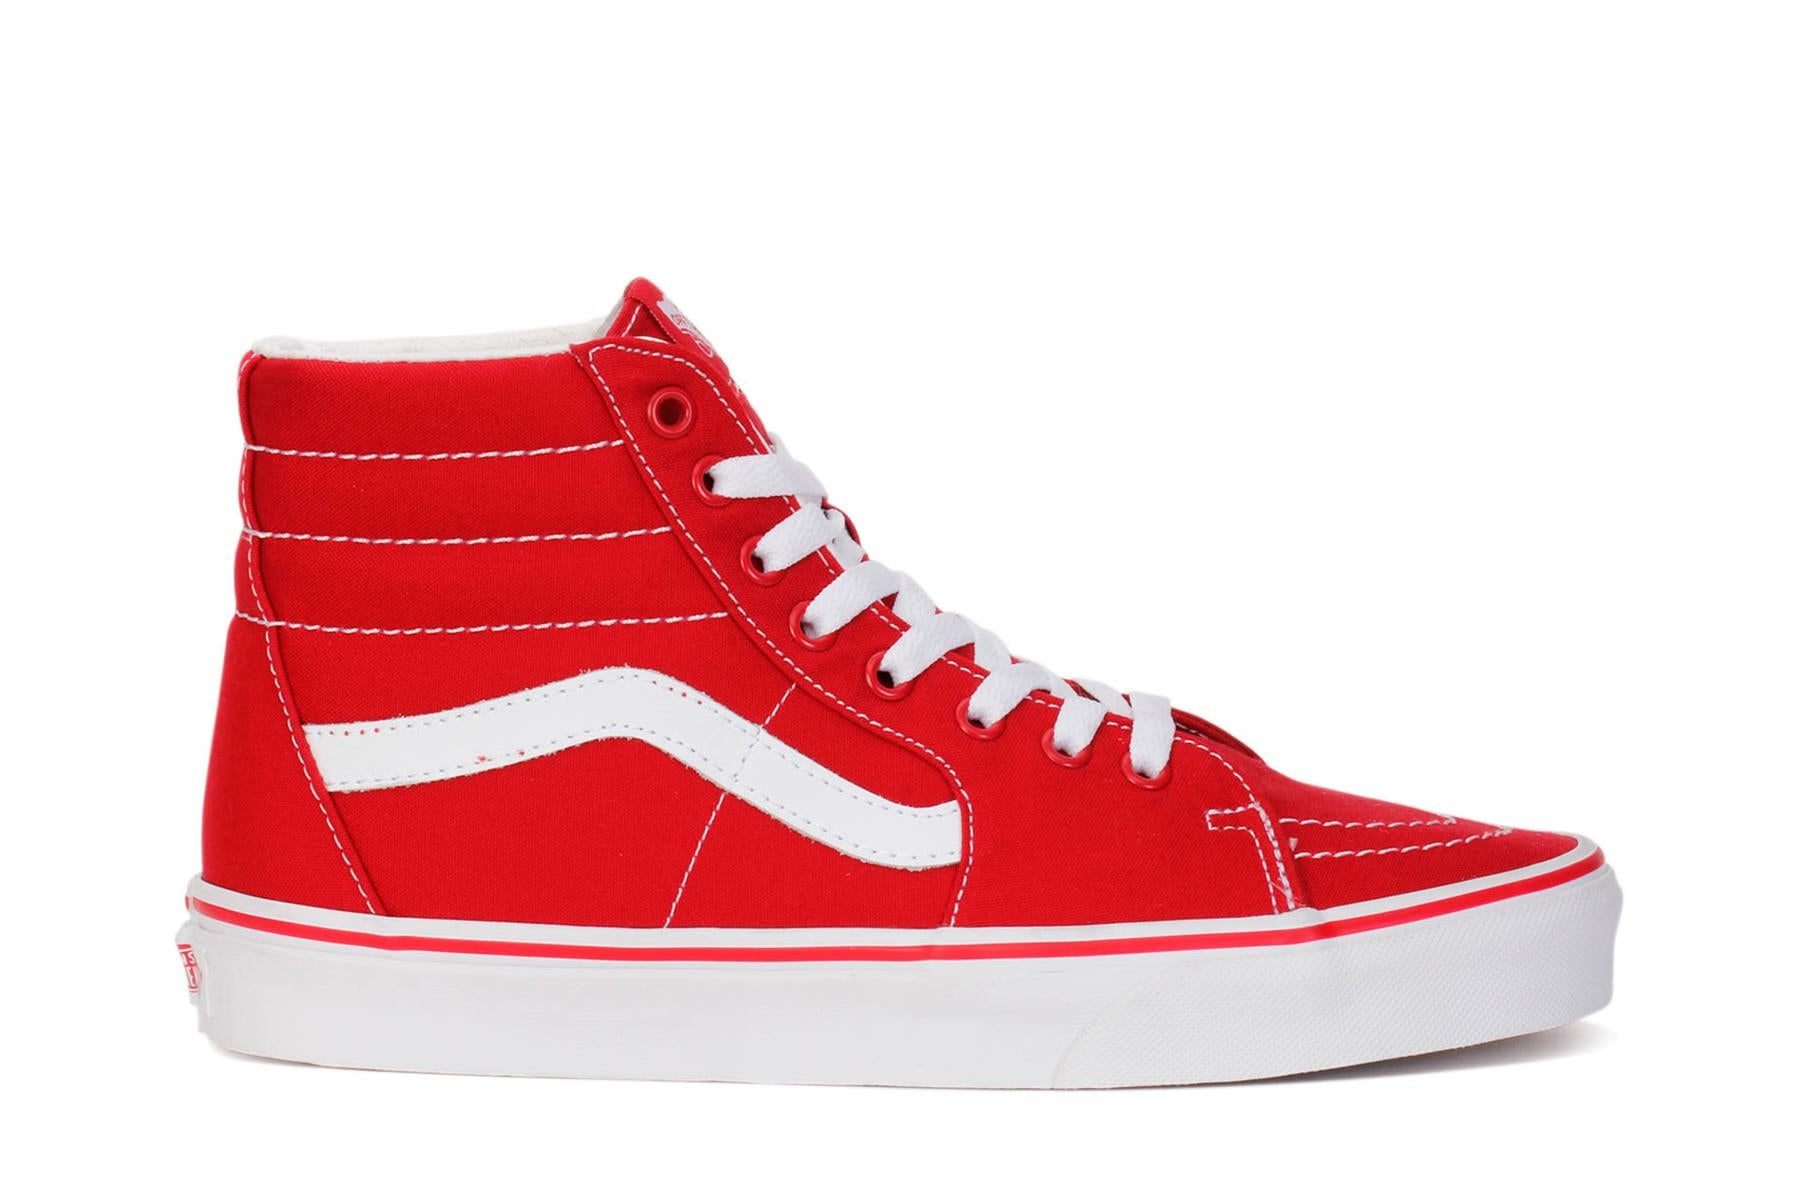 Vans Adult Sneakers SK8-Hi Formula One Canvas VN000TS9GYK